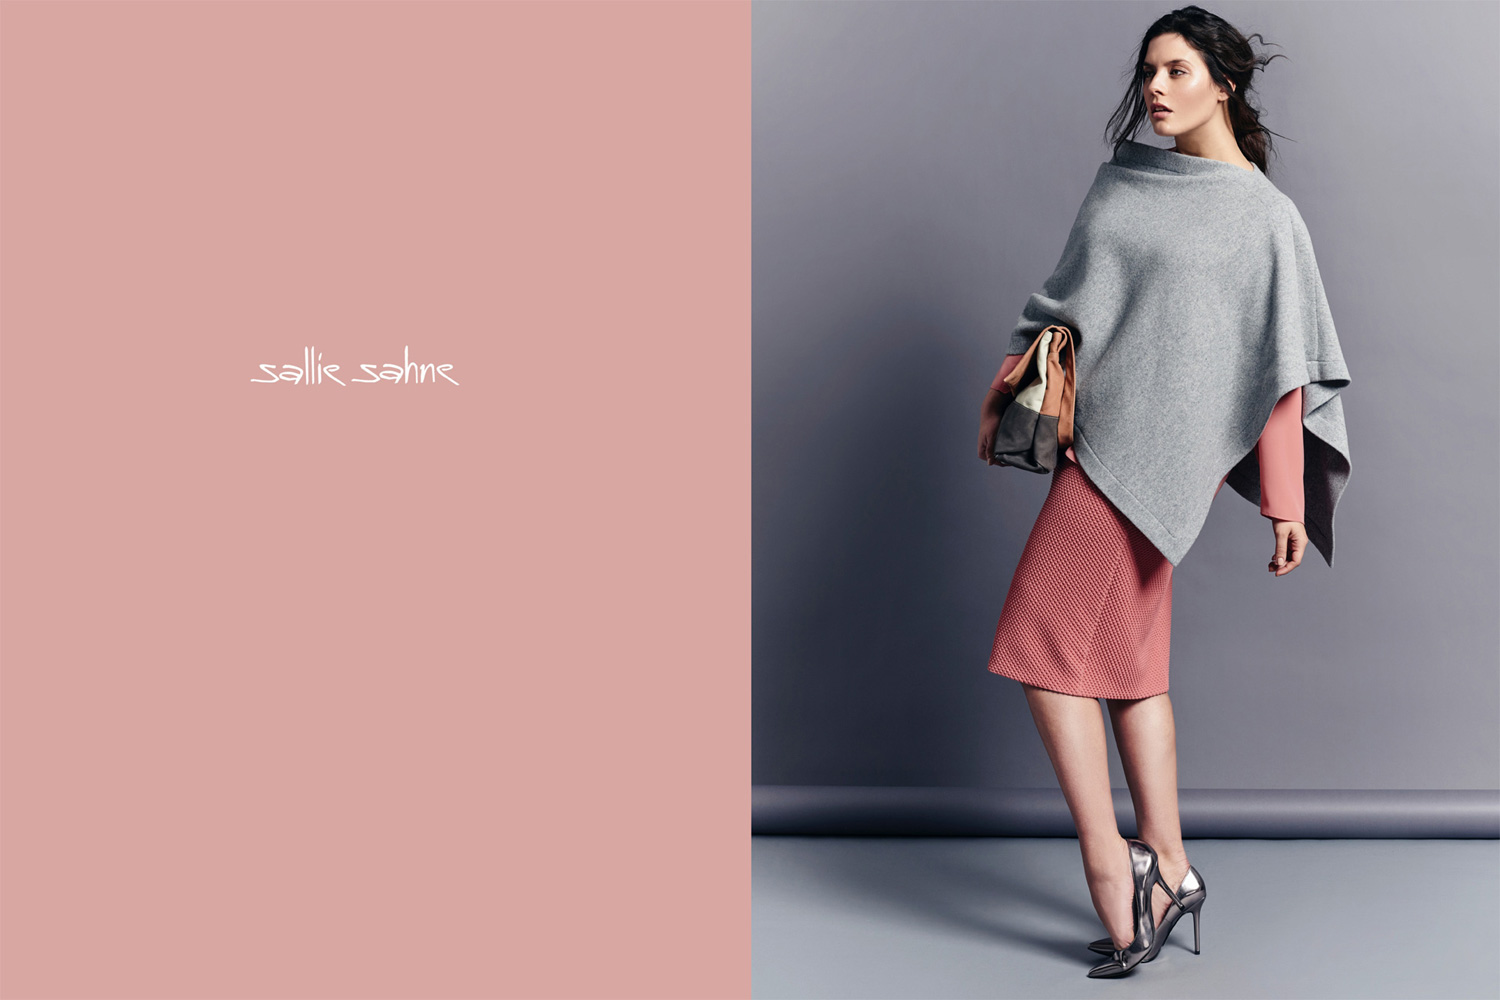 ASTRID M. OBERT PHOTOGRAPHY PRESENTS - SALLIE SAHNE - SS2015 by Eva Lutz plussize